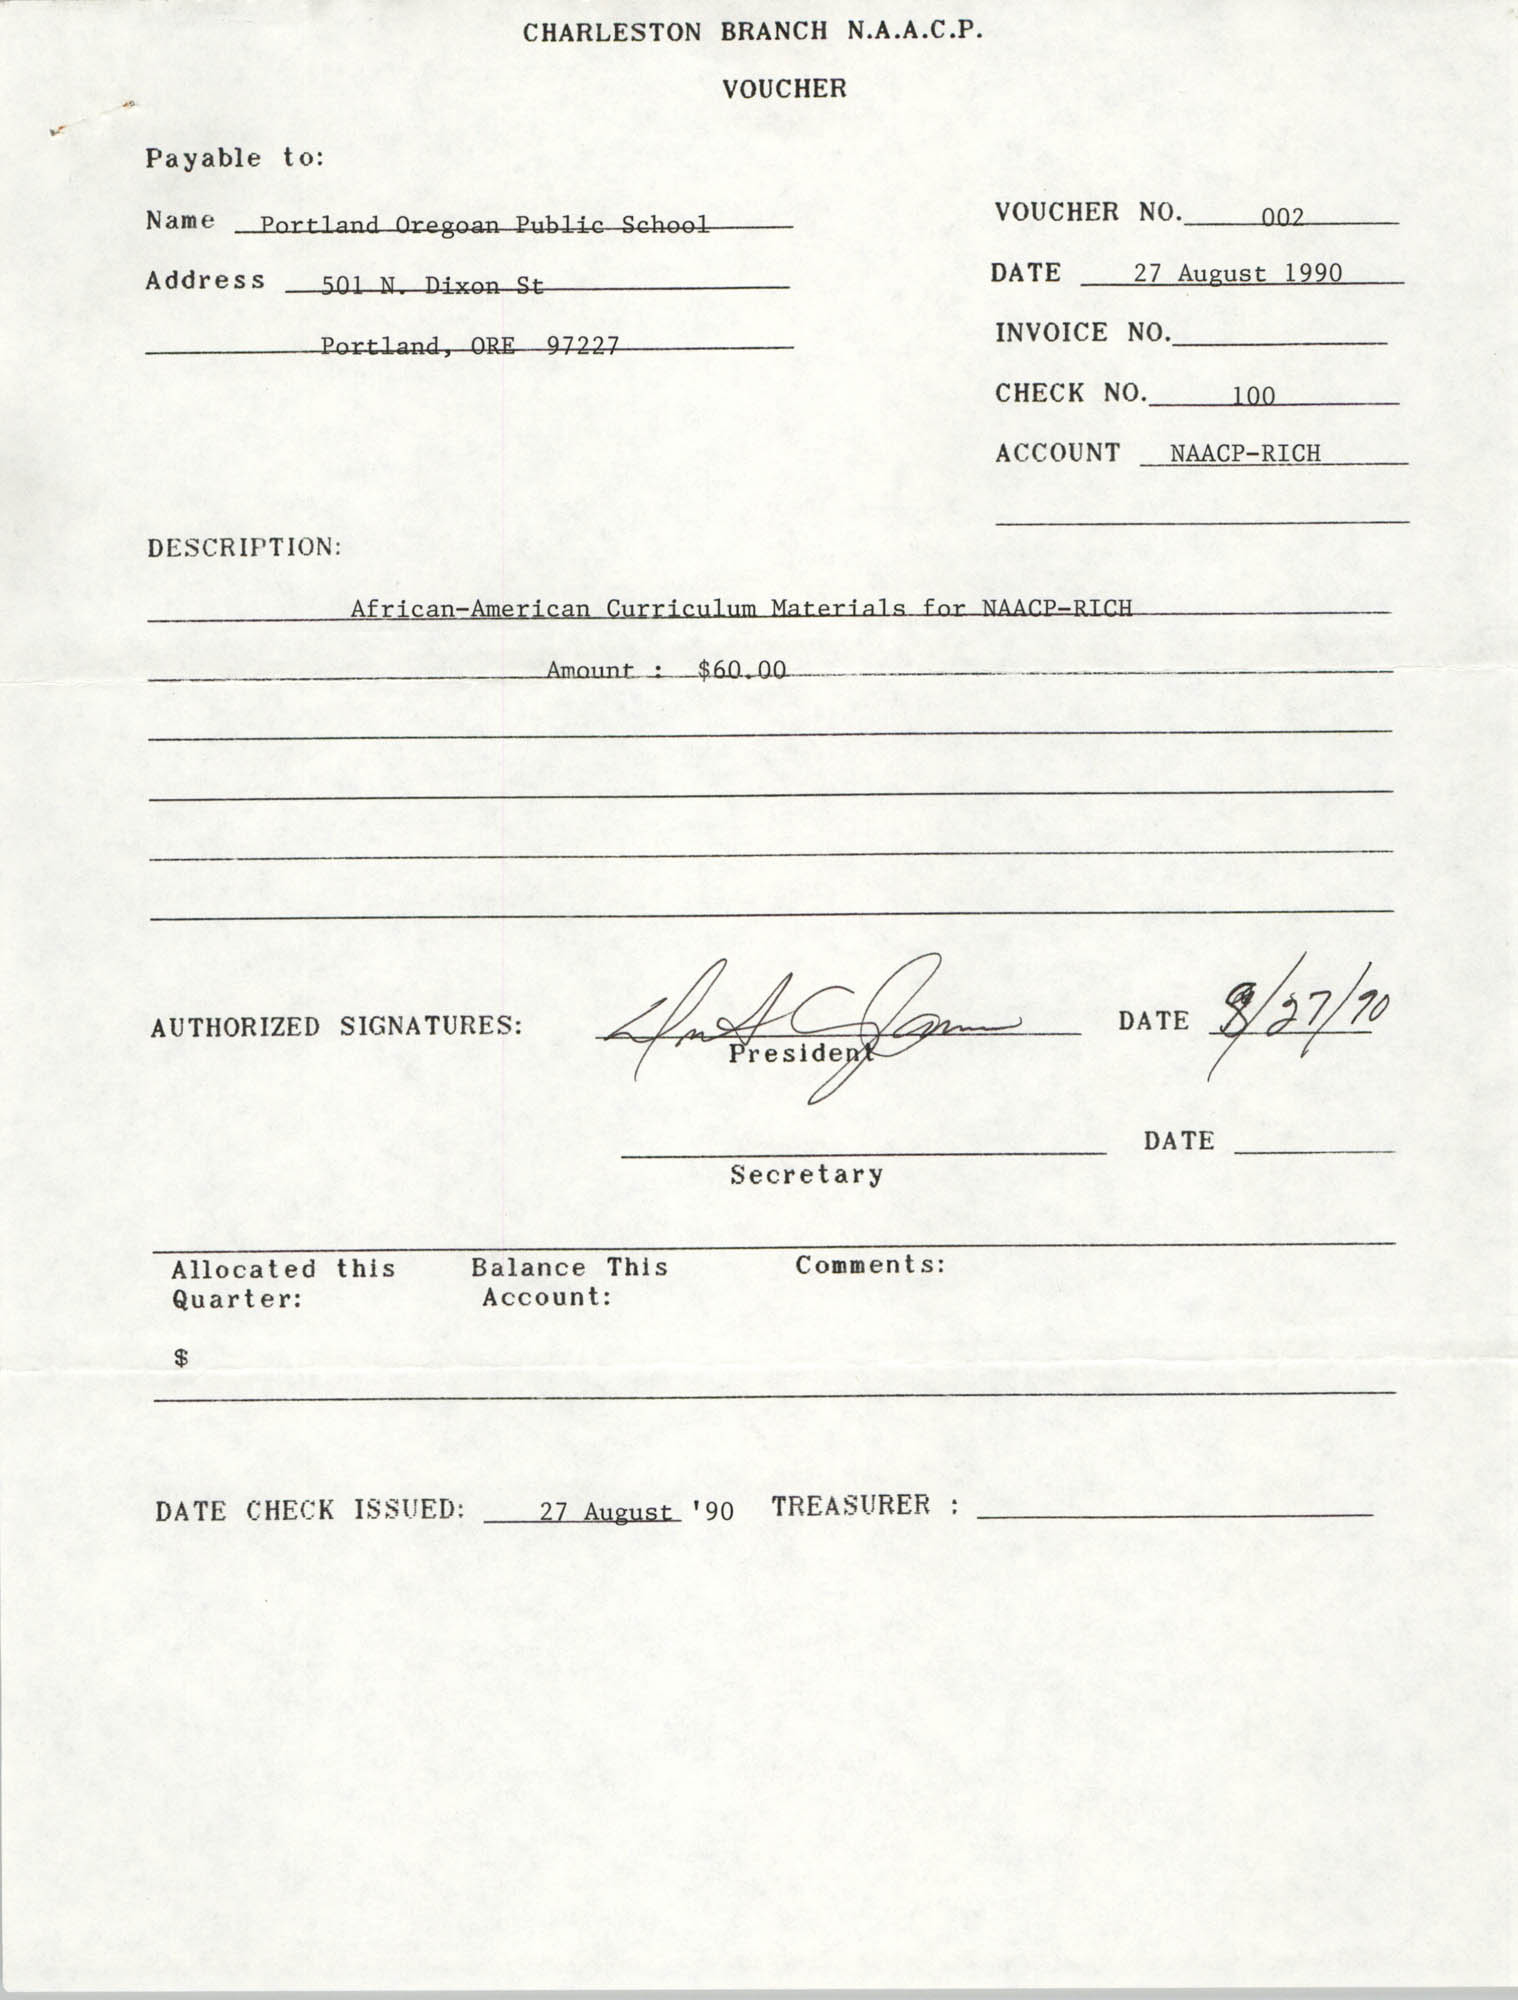 Voucher, National Association for the Advancement of Colored People, Portland, Oregon Public School, Dwight C. James, August 27, 1990